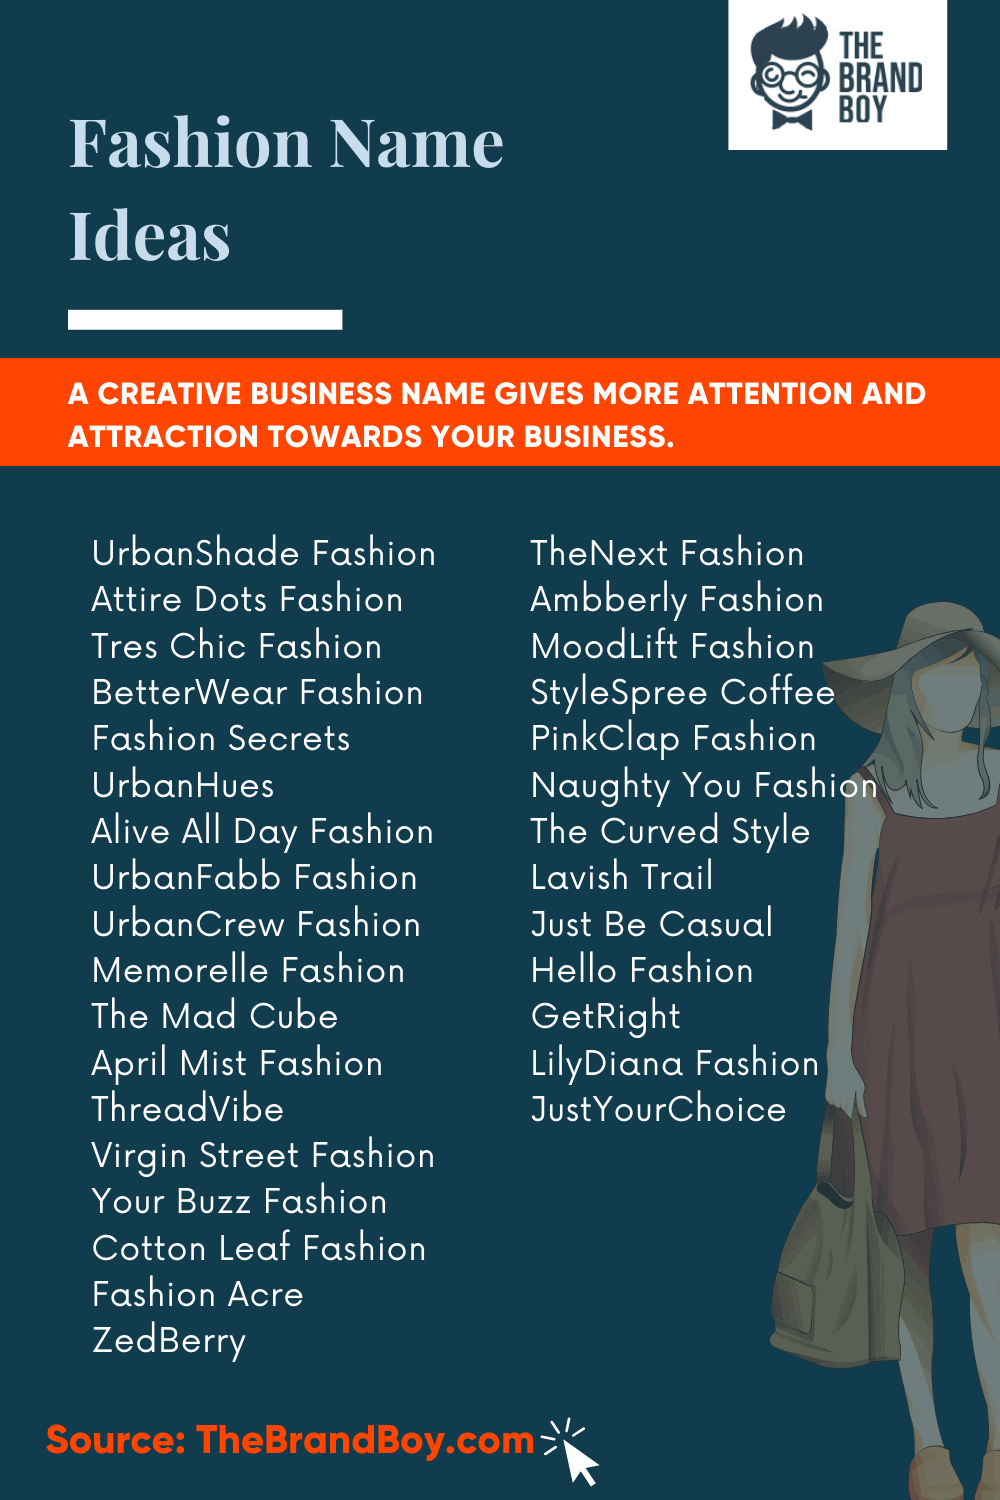 588 Trending Fashion Shop Names Ideas Video Infographic